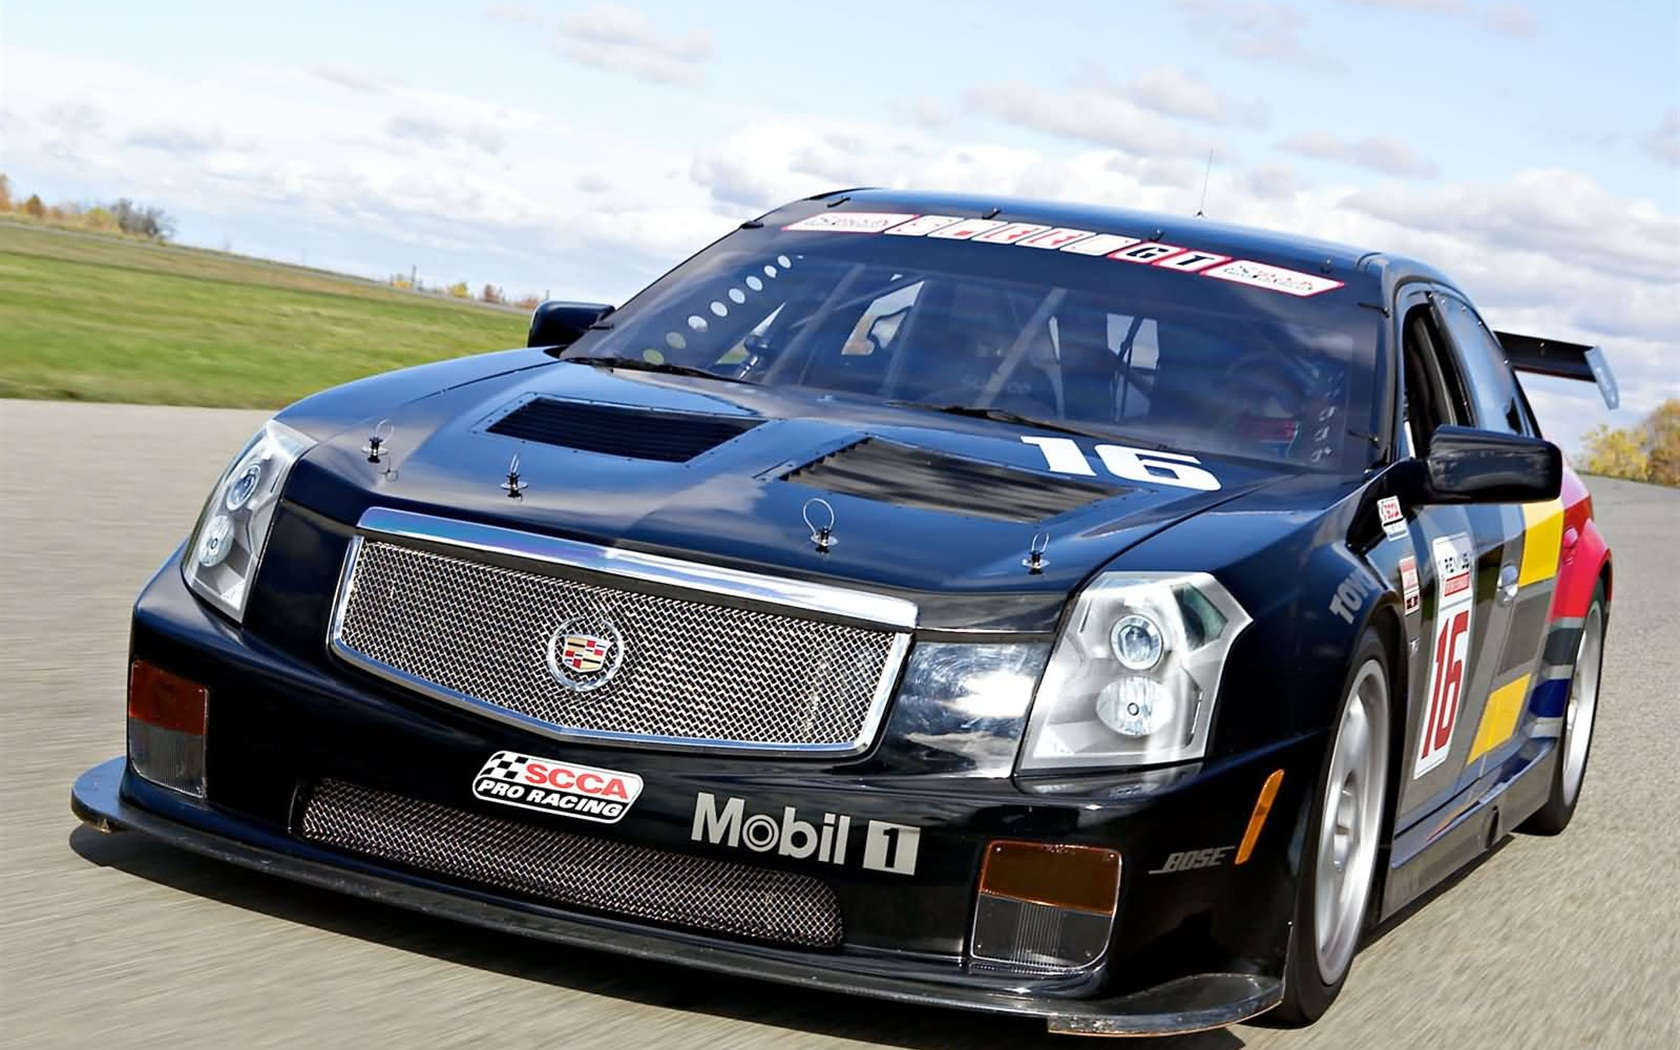 cadillac cts v race car cadillac wiring diagram. Black Bedroom Furniture Sets. Home Design Ideas